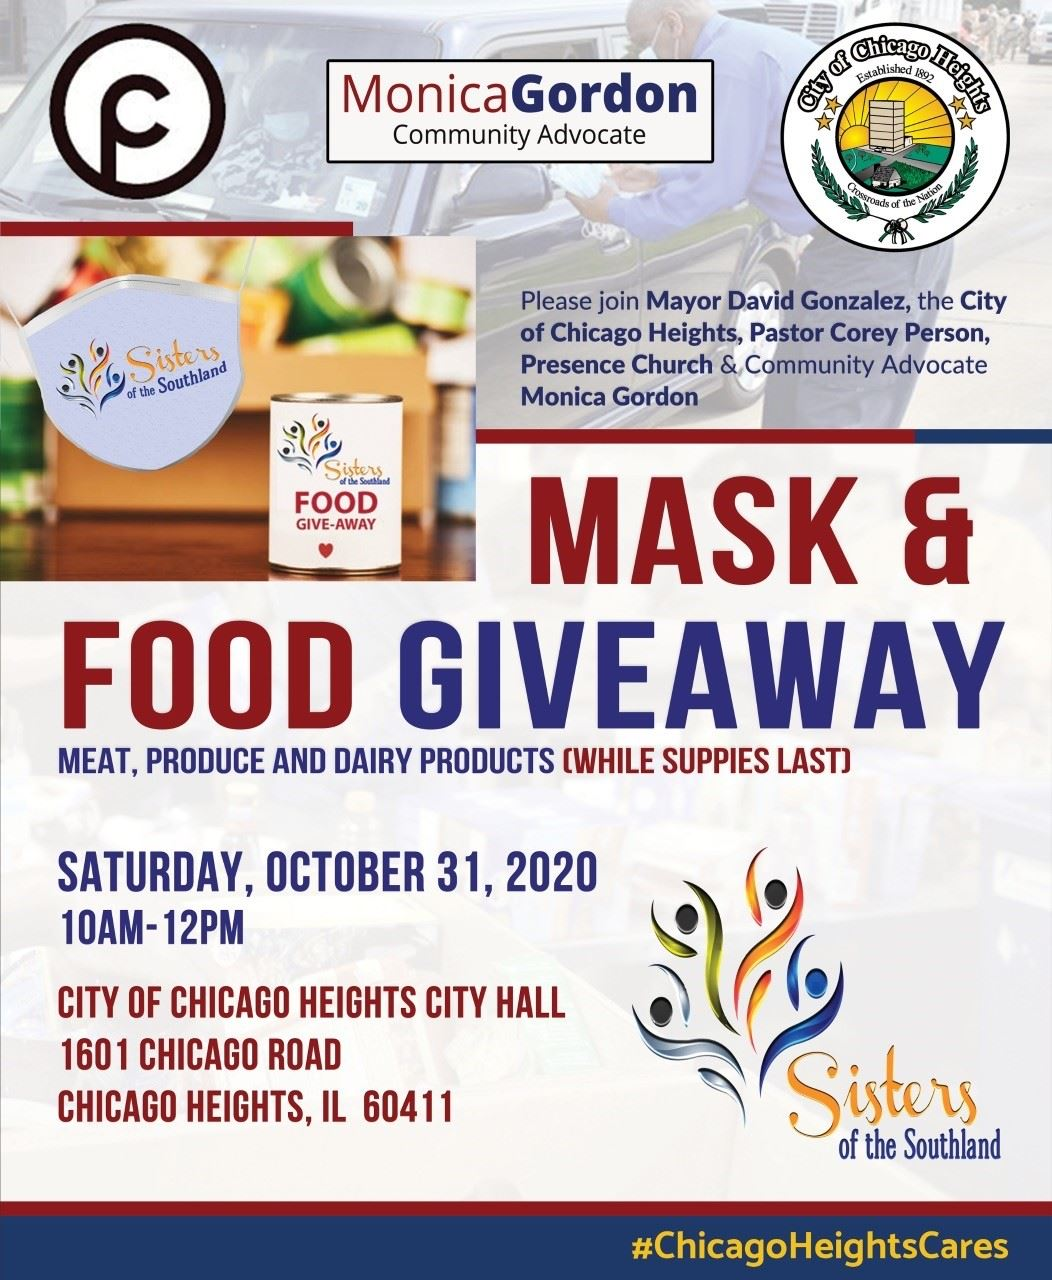 City of Chicago Heights Event - Mask and Food Giveaway Saturday, October 31 2020